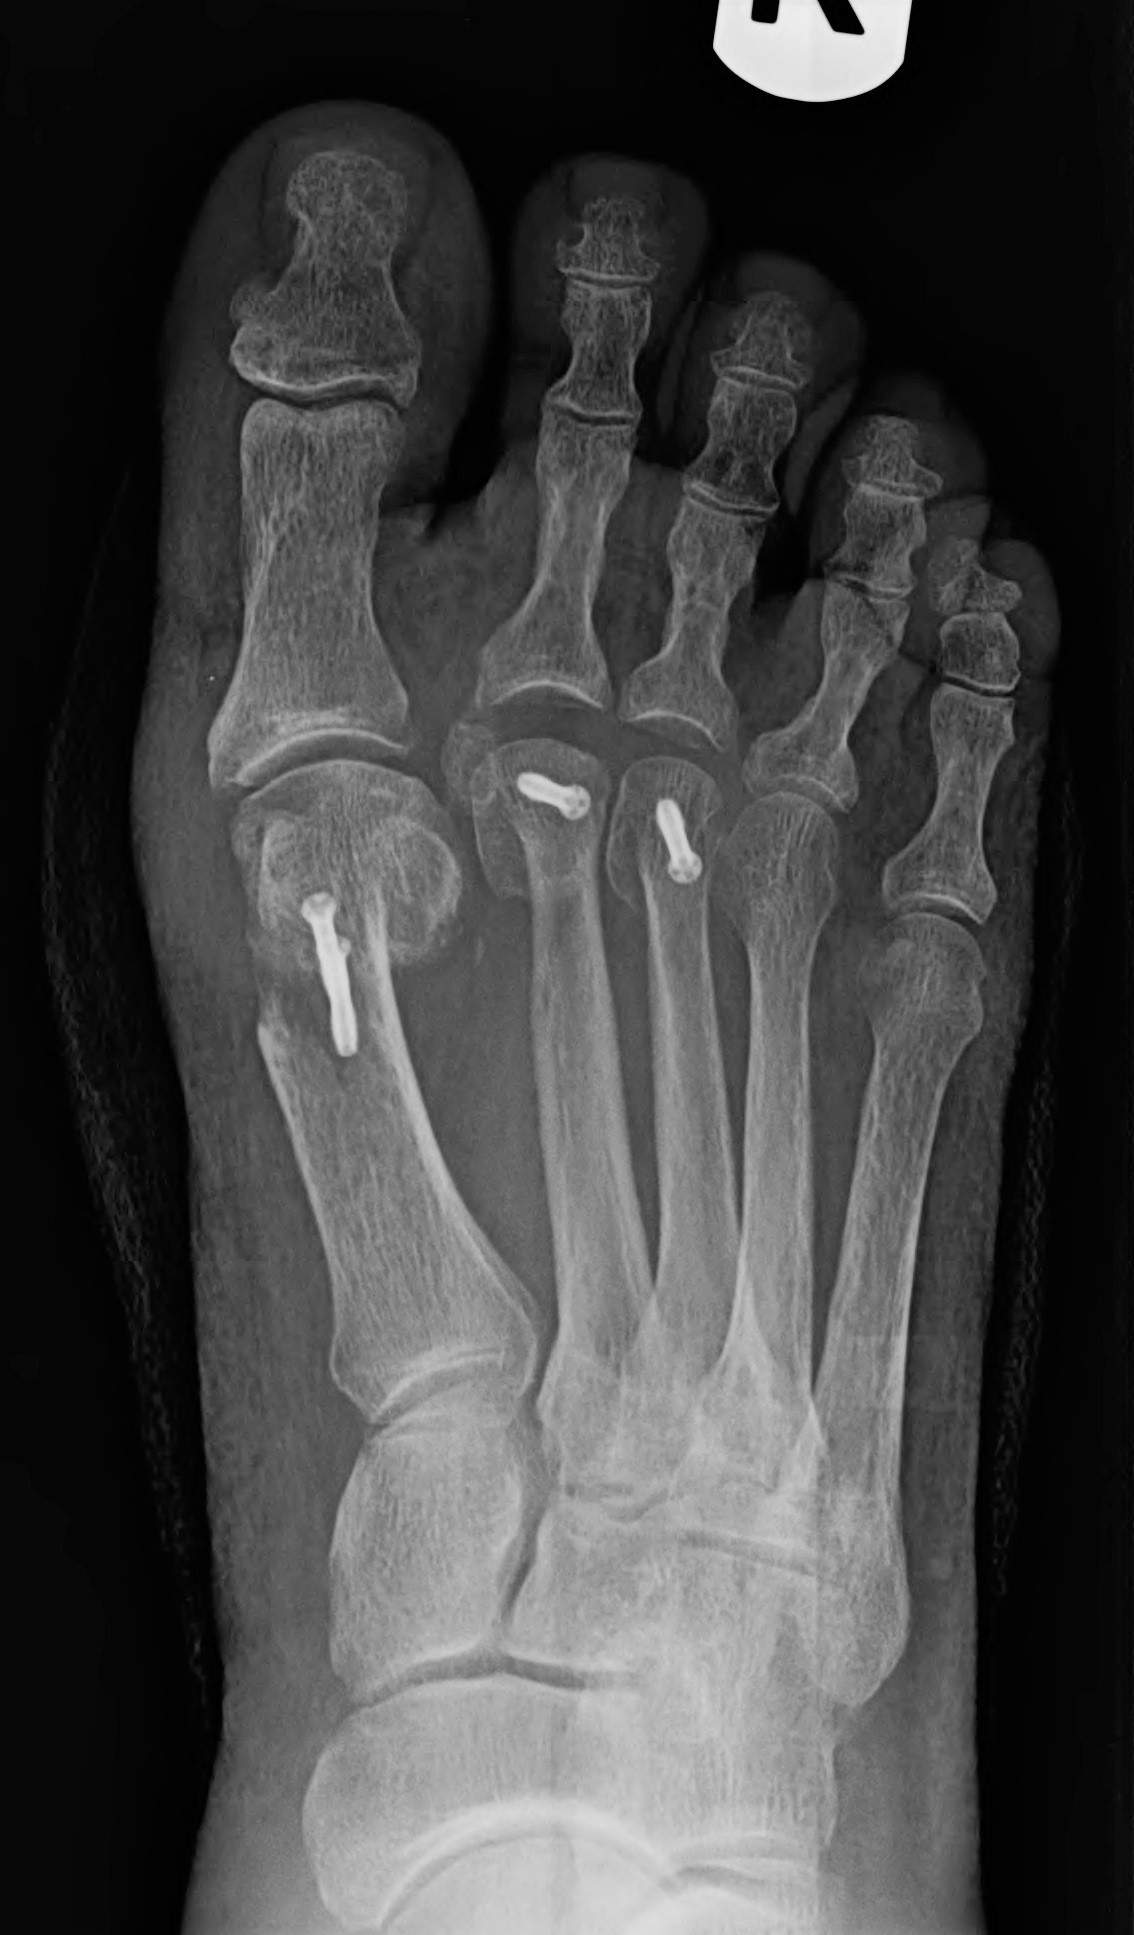 Bunion with Misaligned Toes